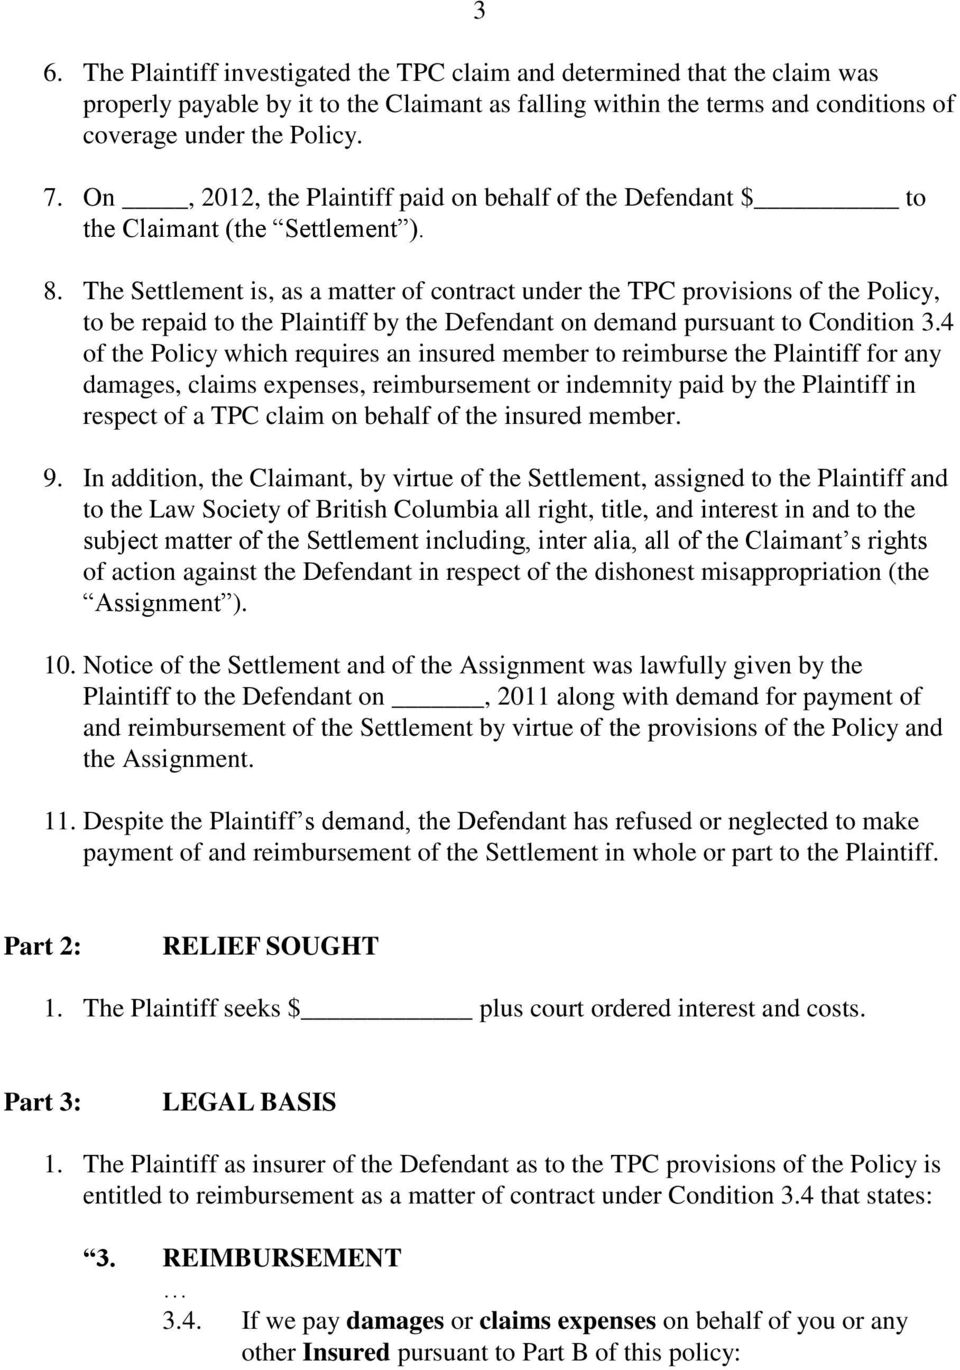 The Settlement is, as a matter of contract under the TPC provisions of the Policy, to be repaid to the Plaintiff by the Defendant on demand pursuant to Condition 3.